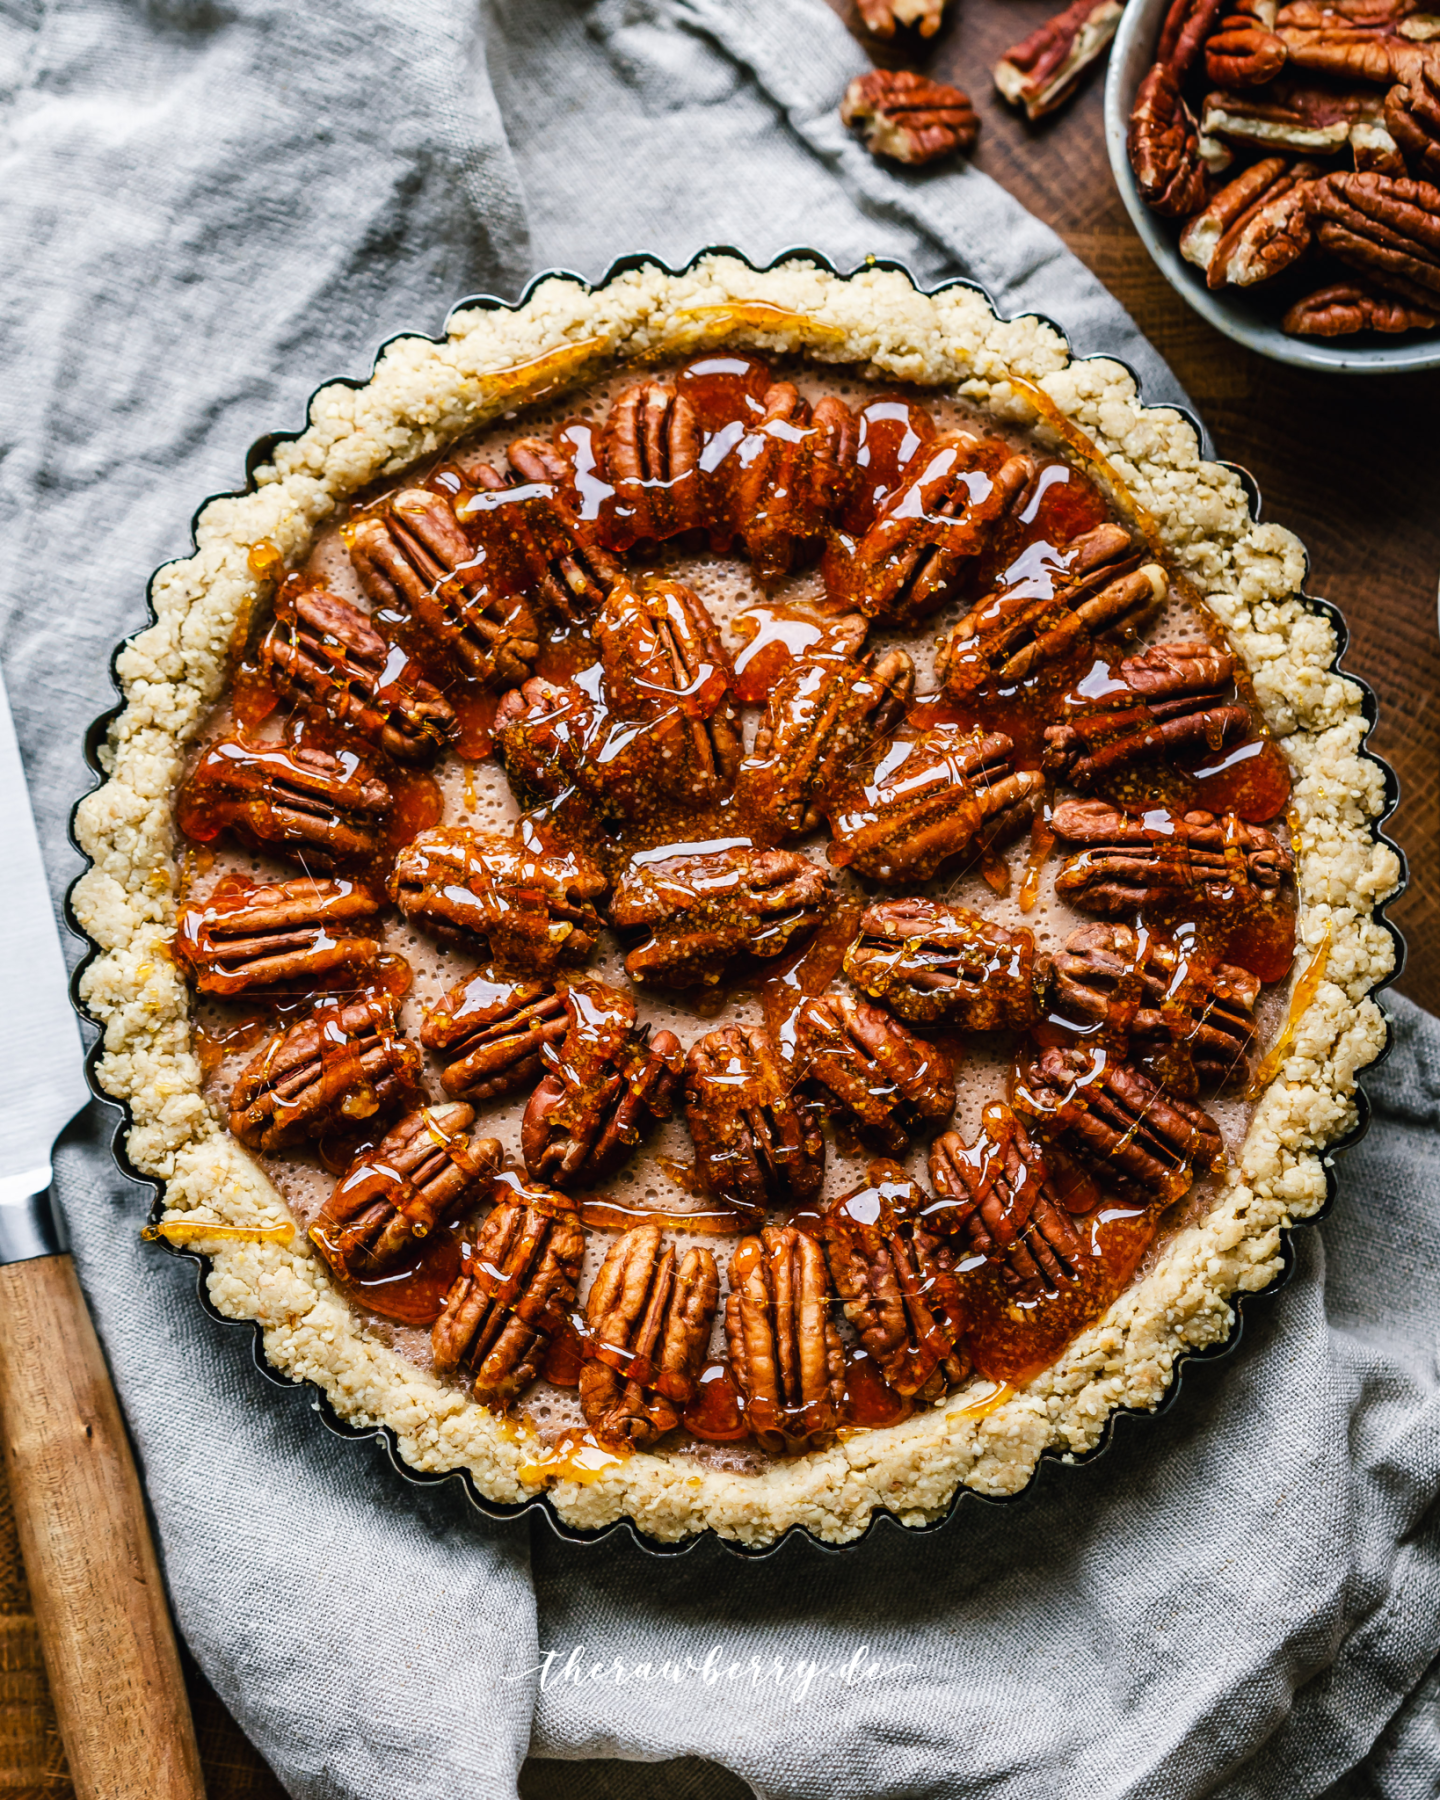 pecan pie, pekanuss kuchen, kuchen, pie, dessert, delicious, nachtisch, lecker, einfach, glutenfrei, glutenfree, vegan, dairy free, Laktose frei, schnell, quick, easy, simple, simple, yum, yummy, delicious, healthy, gesund, therawberry, marie dorfschmidt, food, foodie, essen, baking, backen, food photographie, fotografie, plant-based, pflanzich